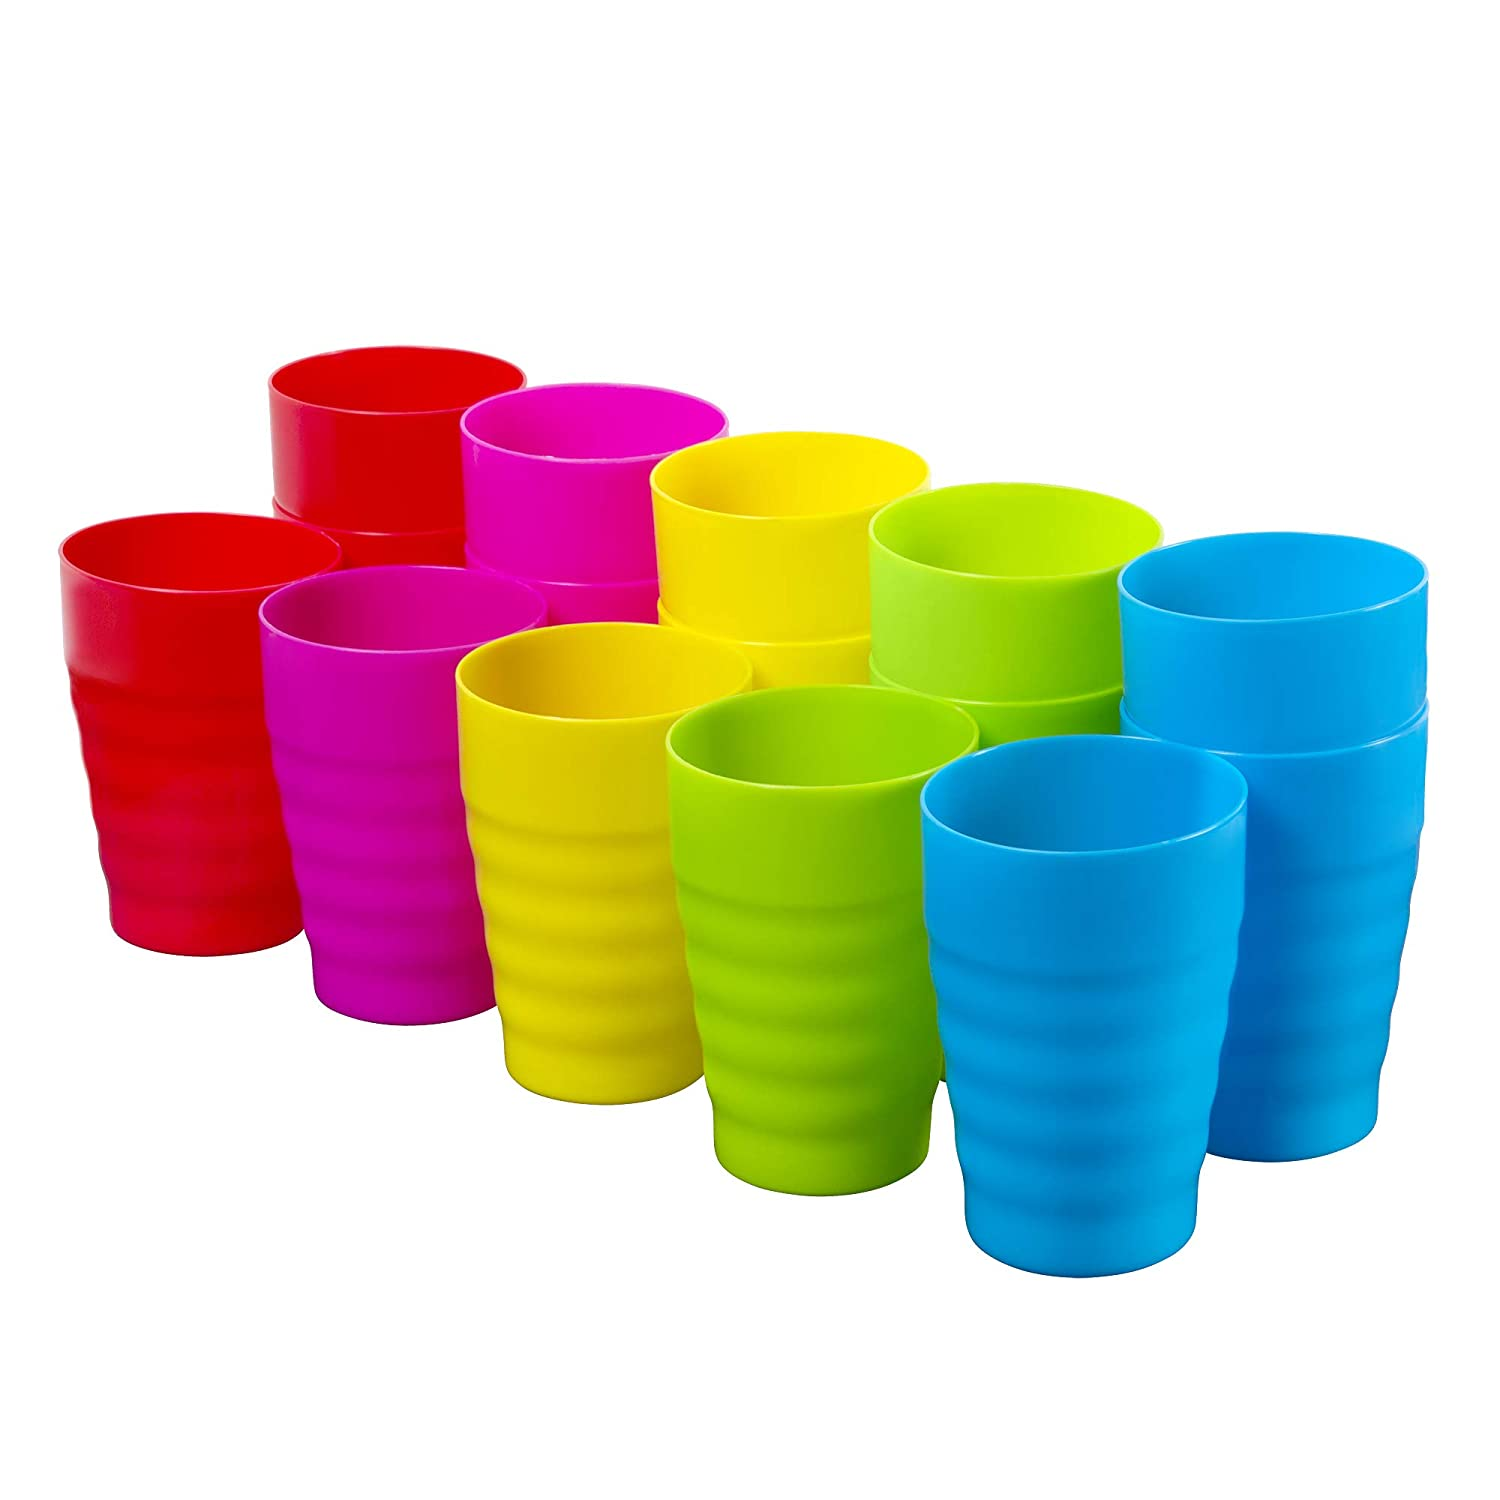 Plaskidy Kids Cups - Set of 15 Reusable Plastic Cups- 15 oz Drinking Cups for Kids - BPA Free Cups Top Rack Dishwasher Safe Cups - Assorted Colored Cups - Great Plastic Cups For Kids - Party & Picnic